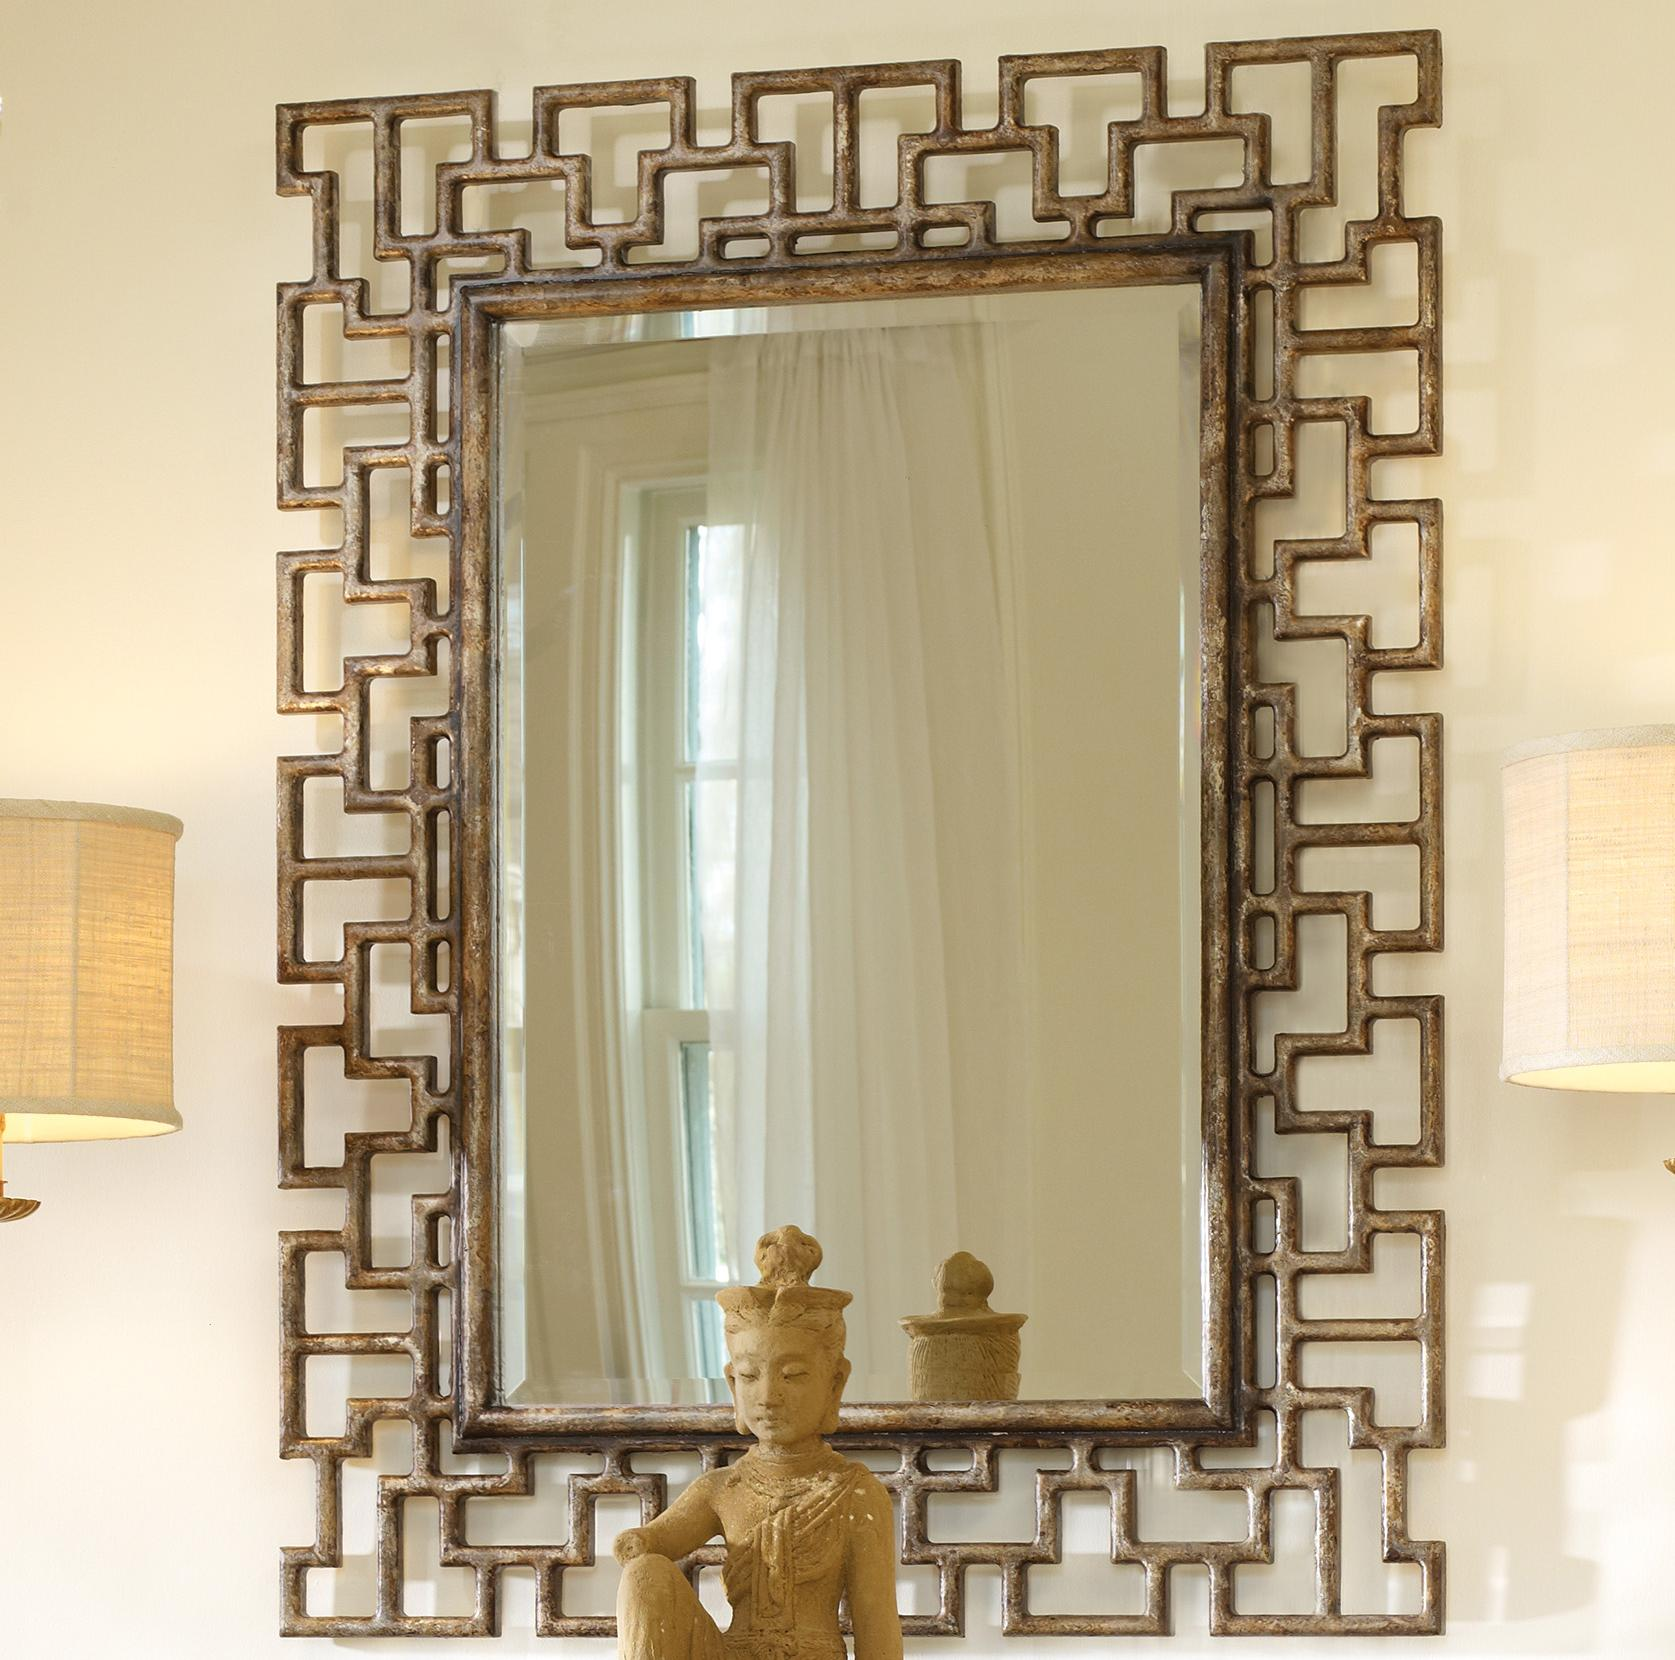 Hooker Furniture Mélange Fretwork Mirror - Item Number: 638-50094